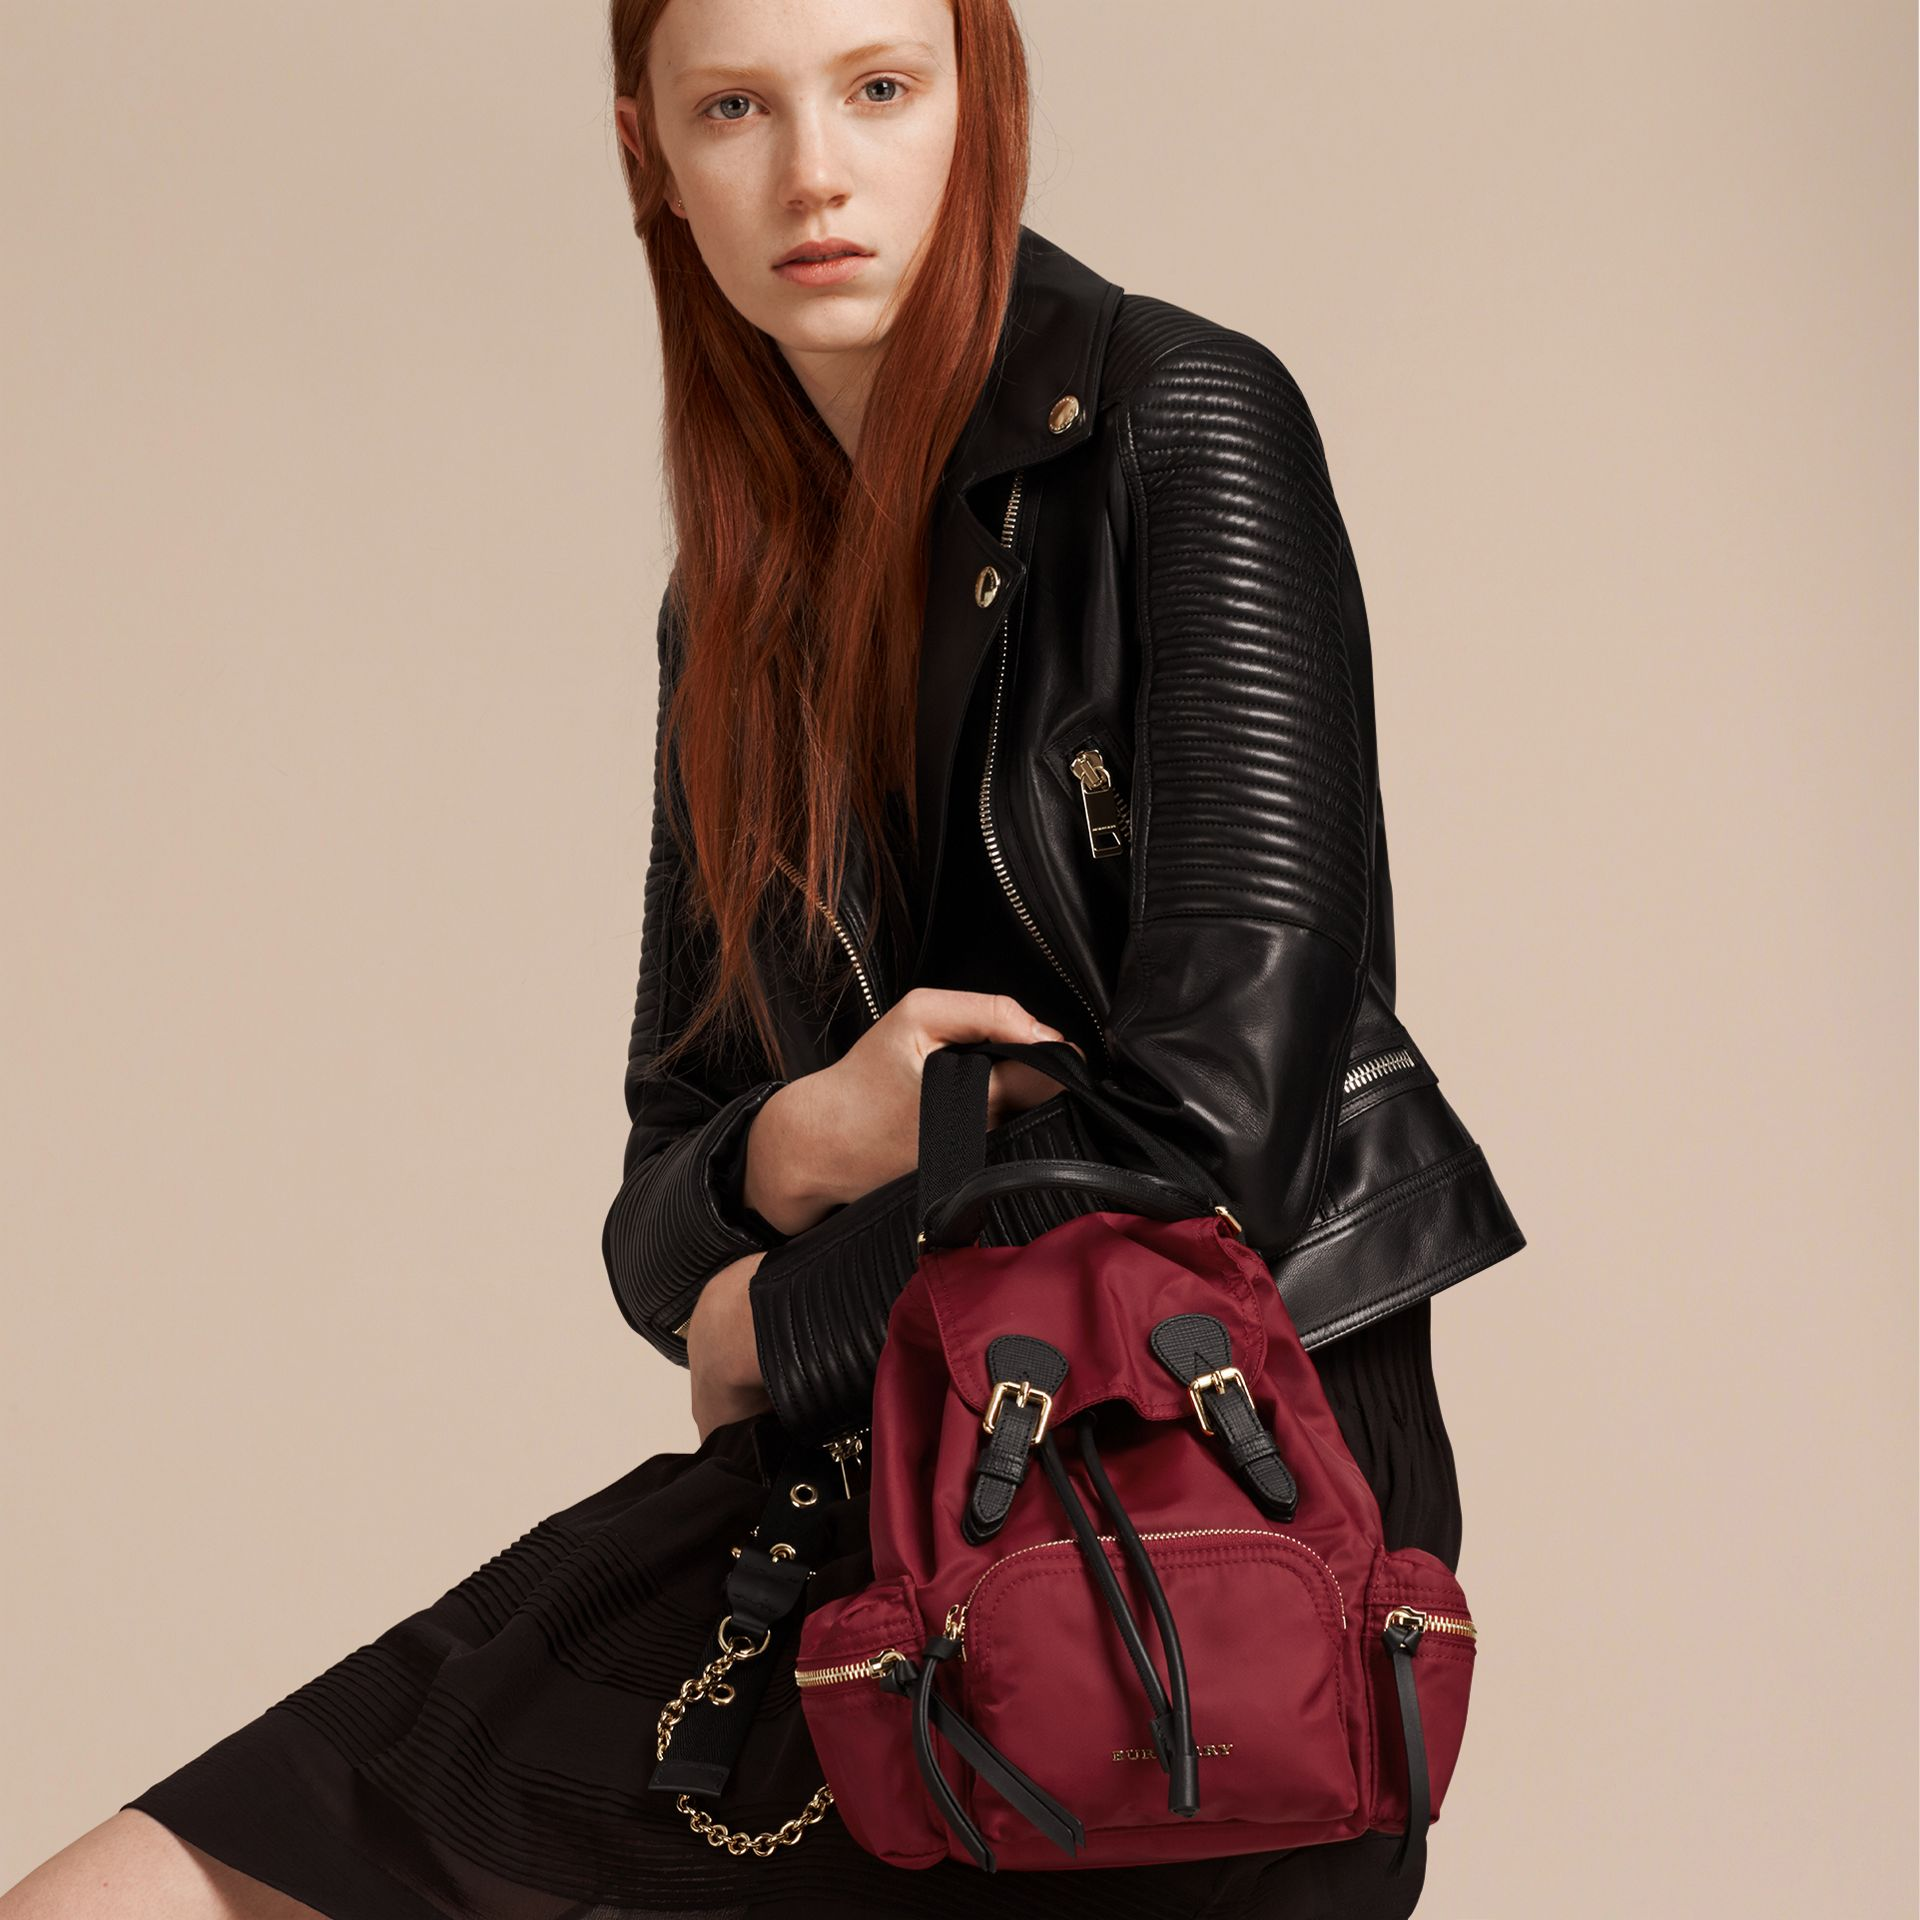 The Small Rucksack in Technical Nylon and Leather in Parade Red - Women | Burberry Singapore - gallery image 3